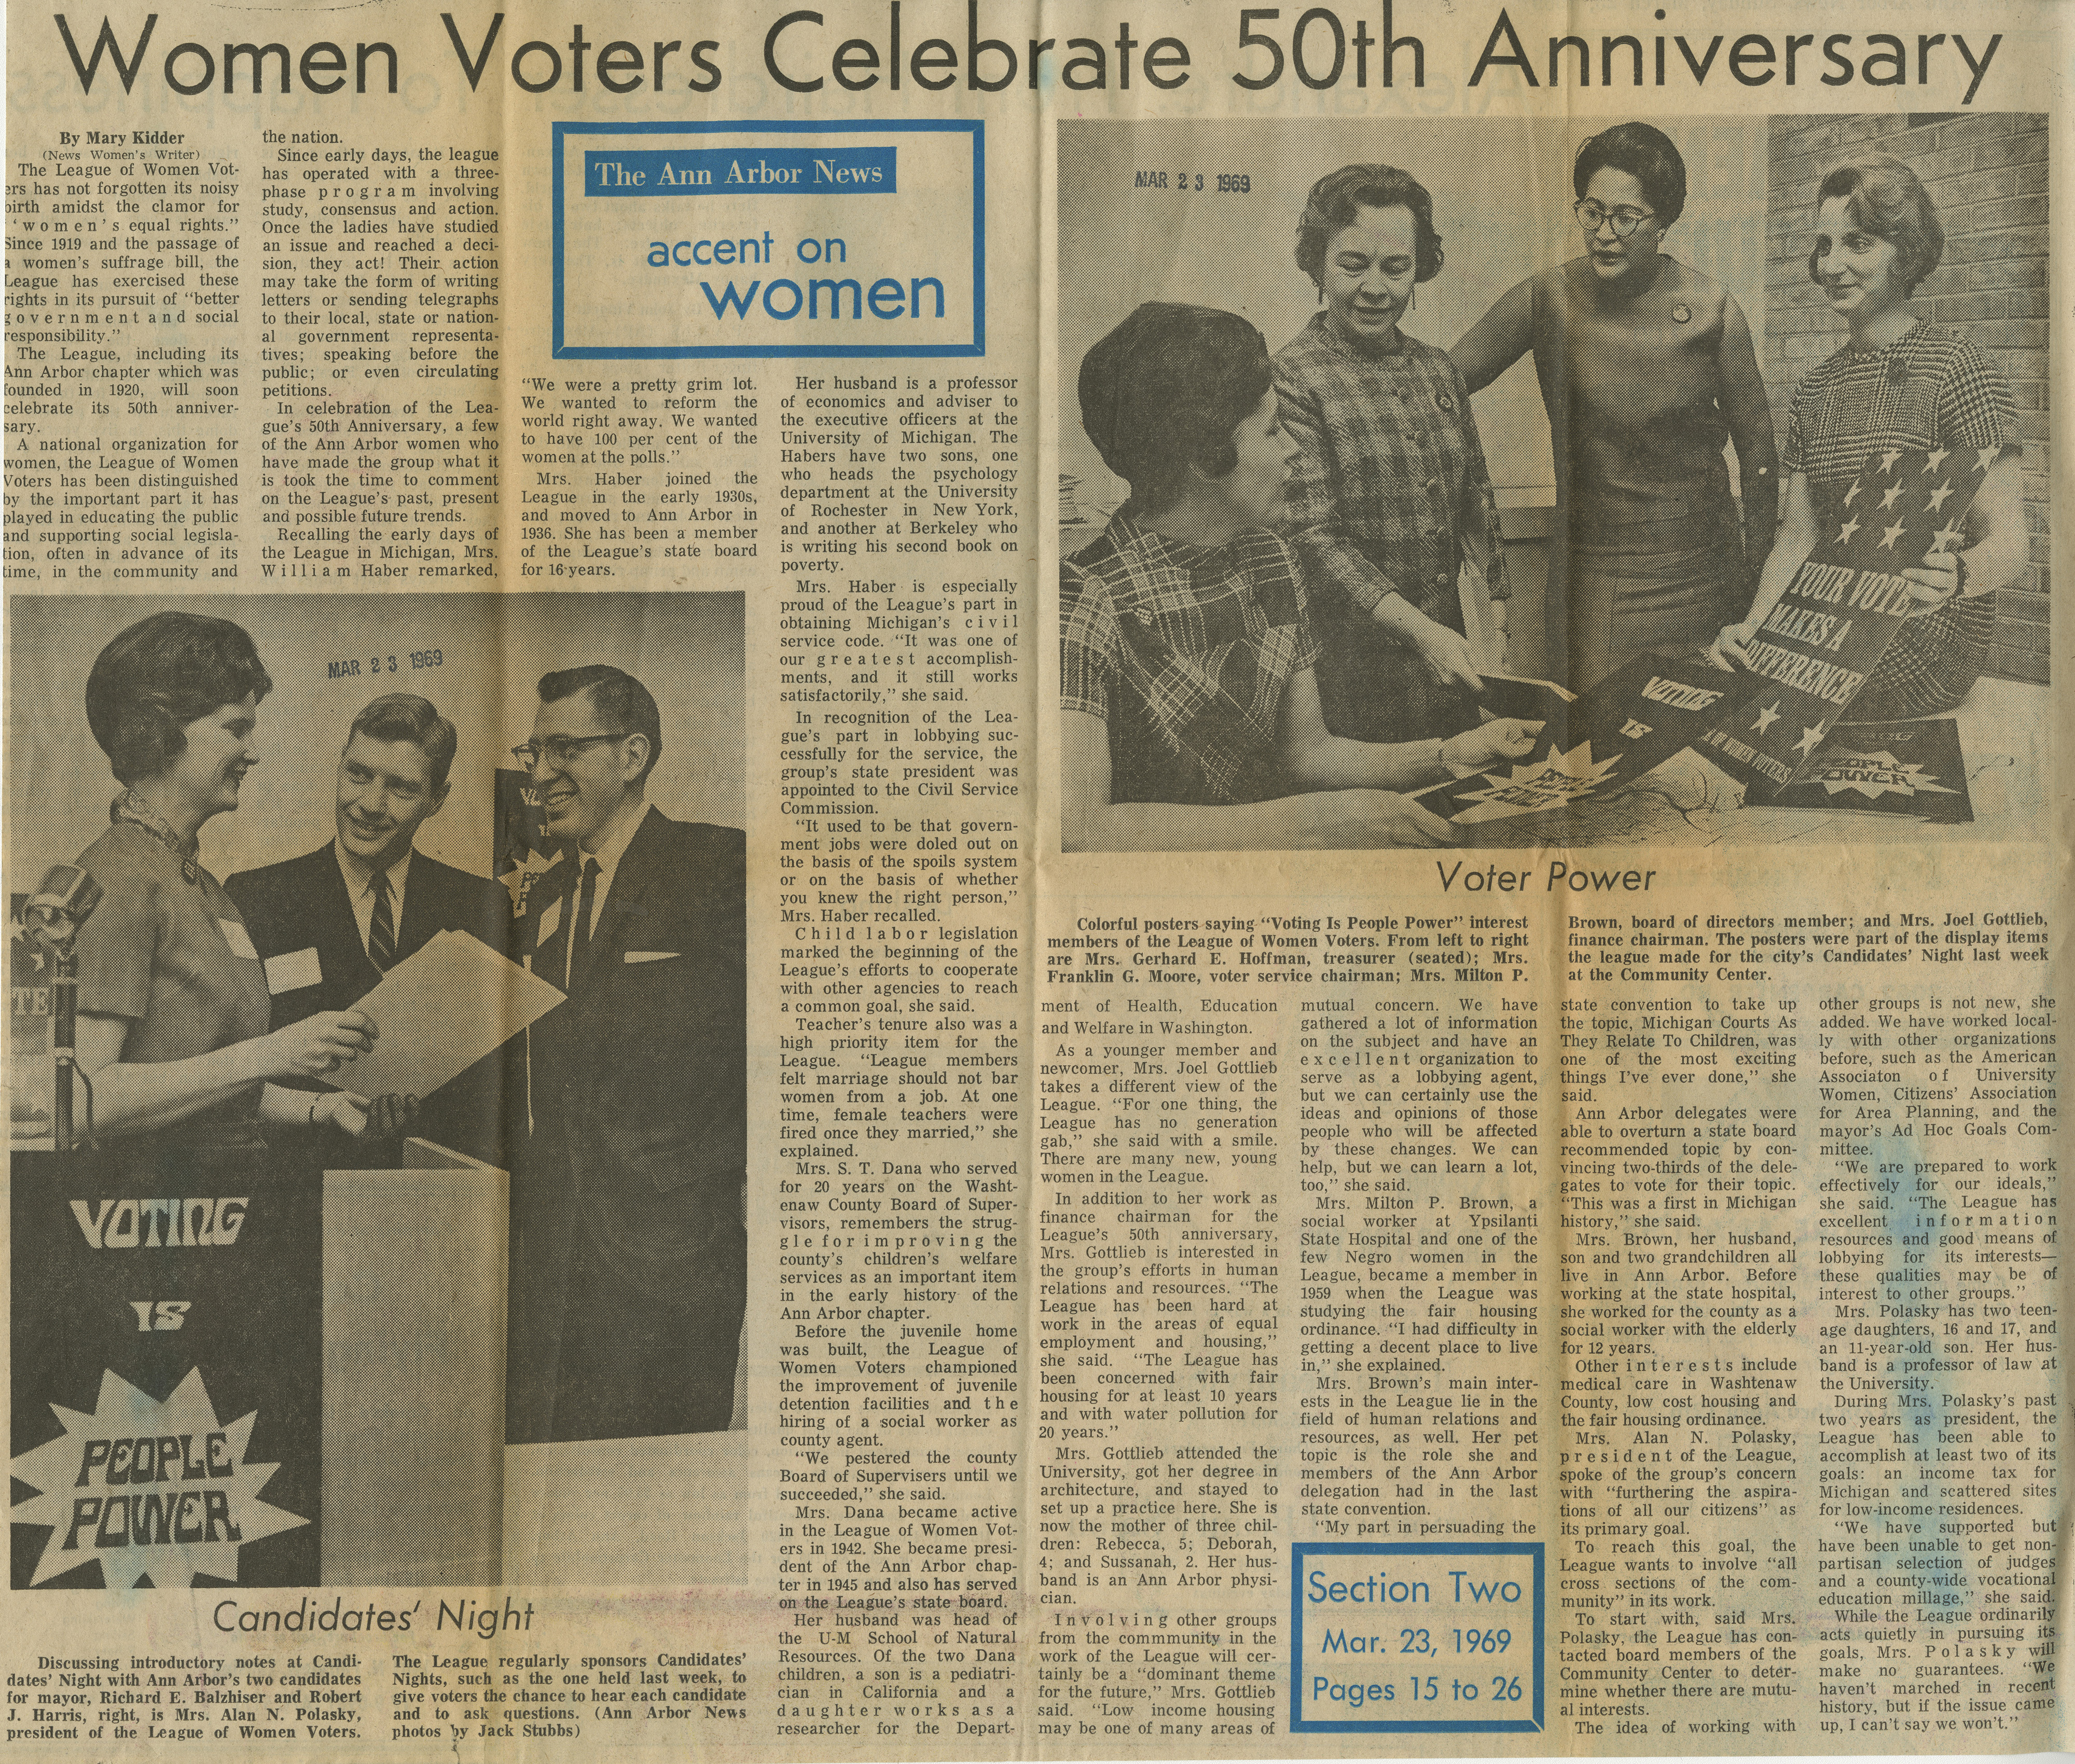 Women Voters Celebrate 50th Anniversary image